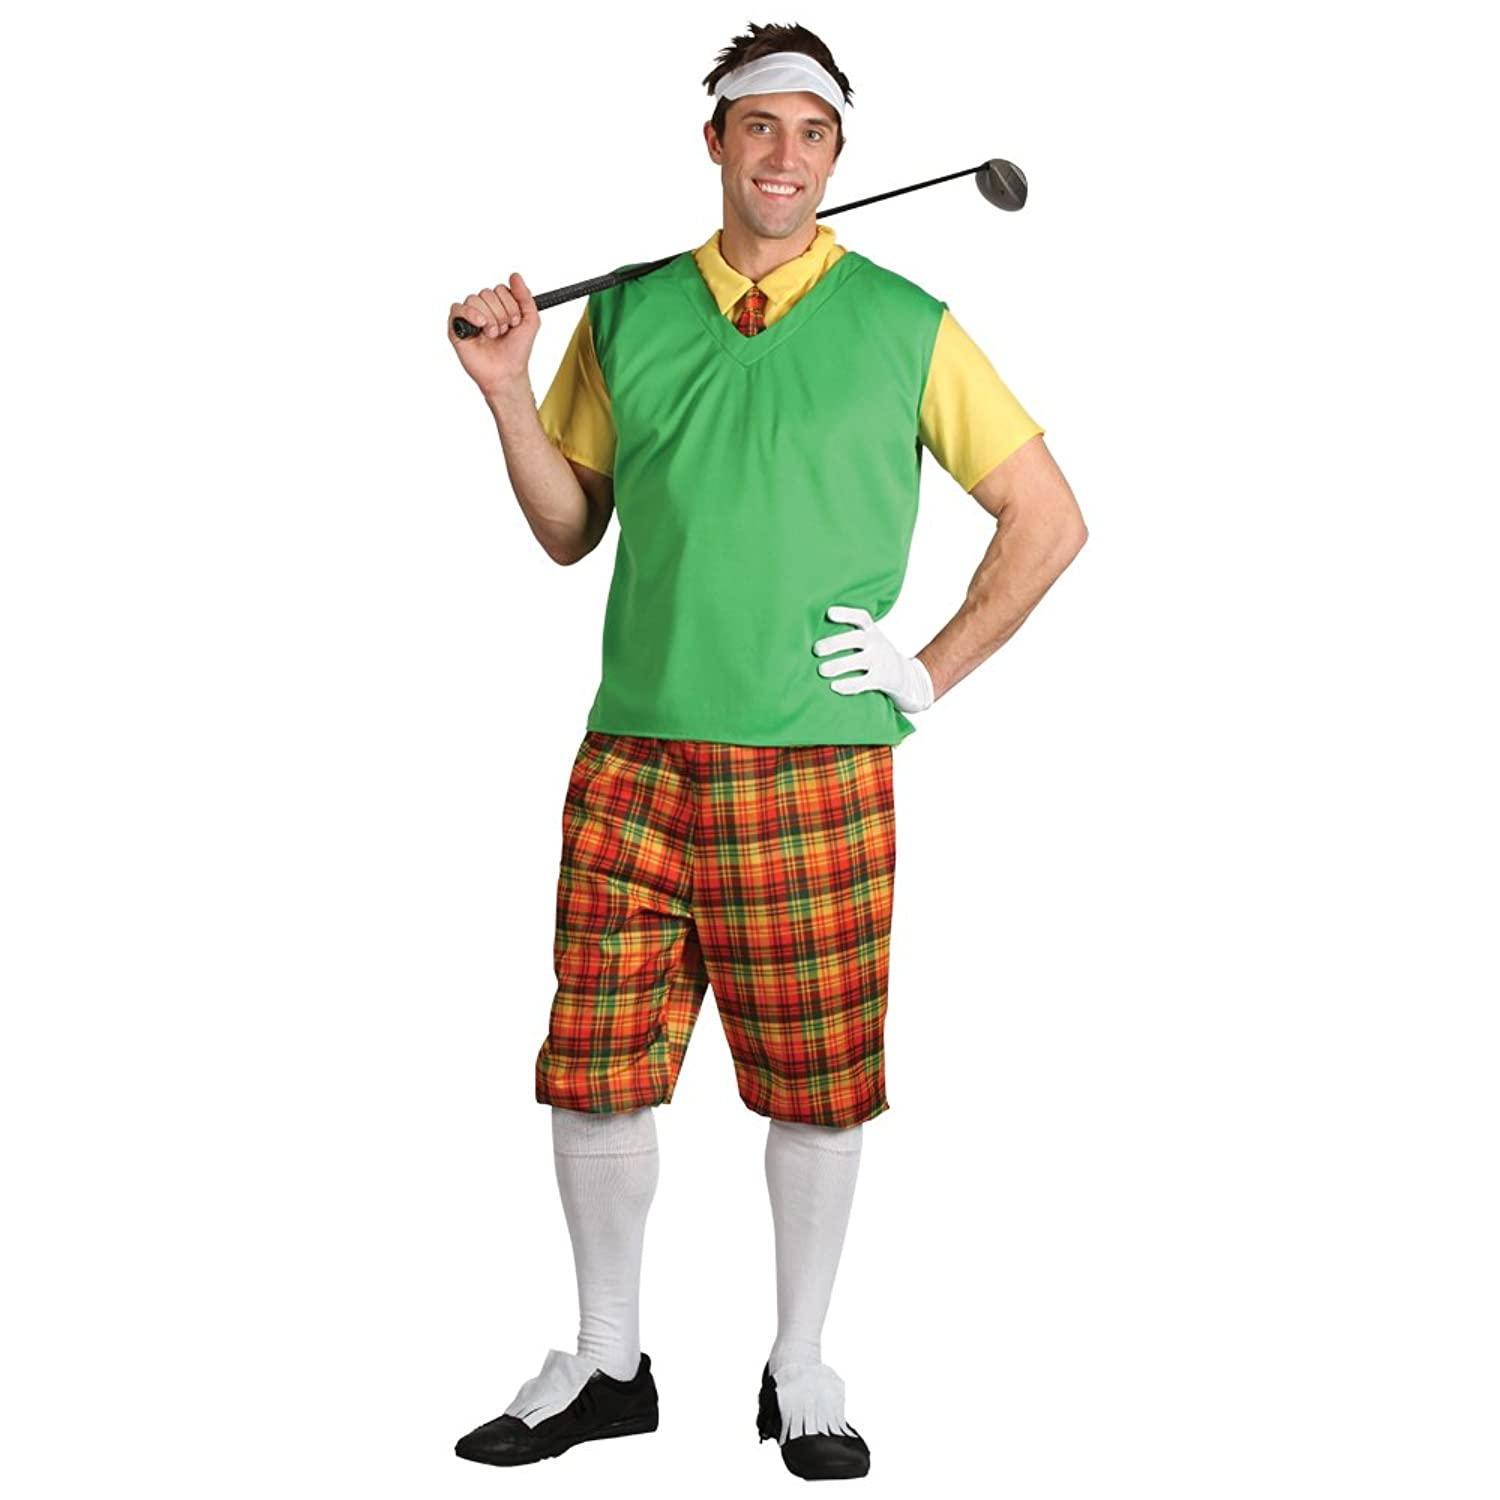 funny guy golfer adults pub golf fancy dress costume men men large amazoncouk clothing - Golfer Halloween Costume